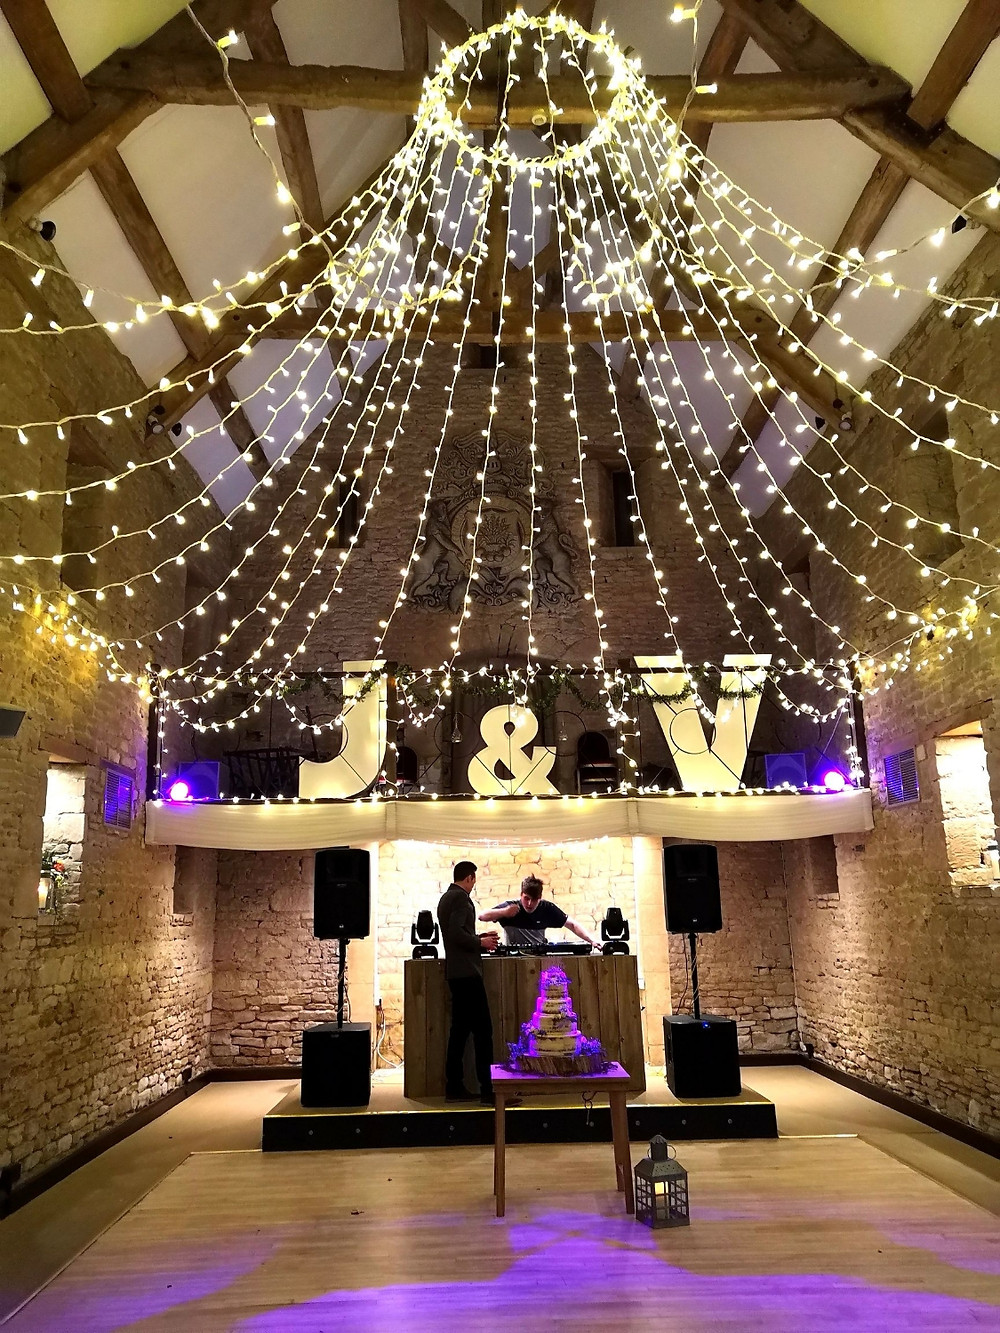 A wedding at the great tythe barn tetbury. fairy lights draped from the ceiling beams with illuminated letters and violet uplightinf